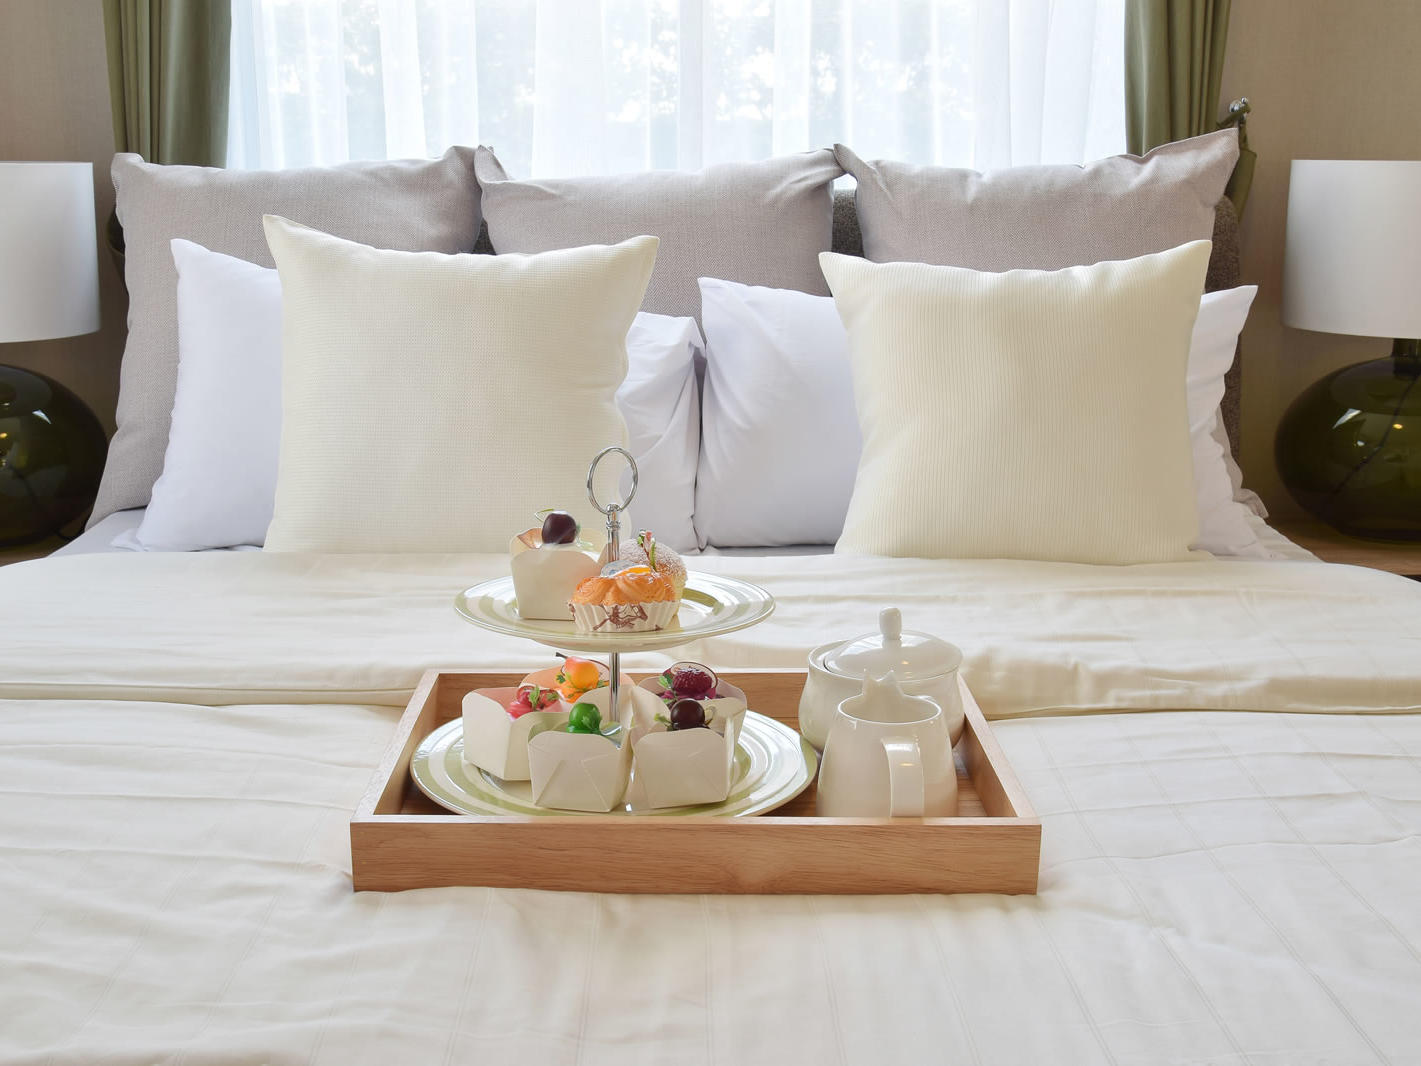 tea and cakes tray on bed Unahotels Palazzo Mannaioni Toscana